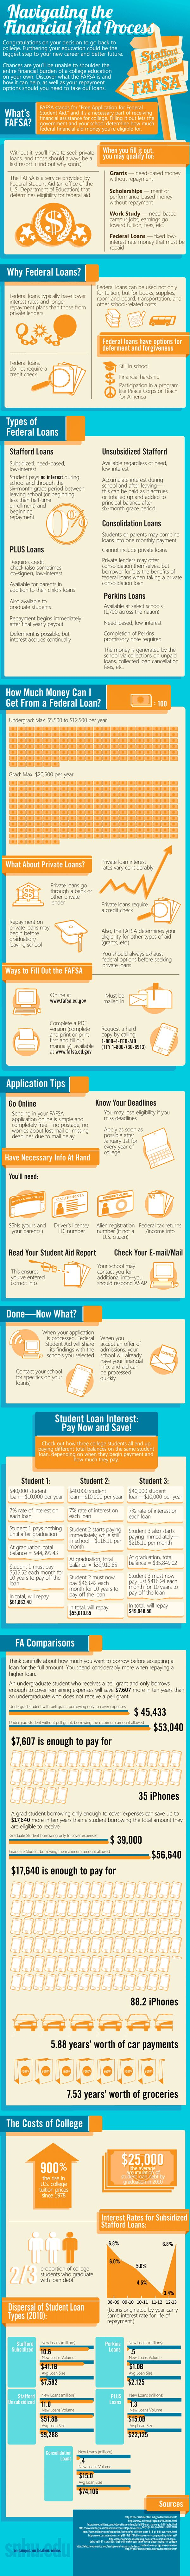 Navigating Financial Aid #collegeprep #financialaid #money